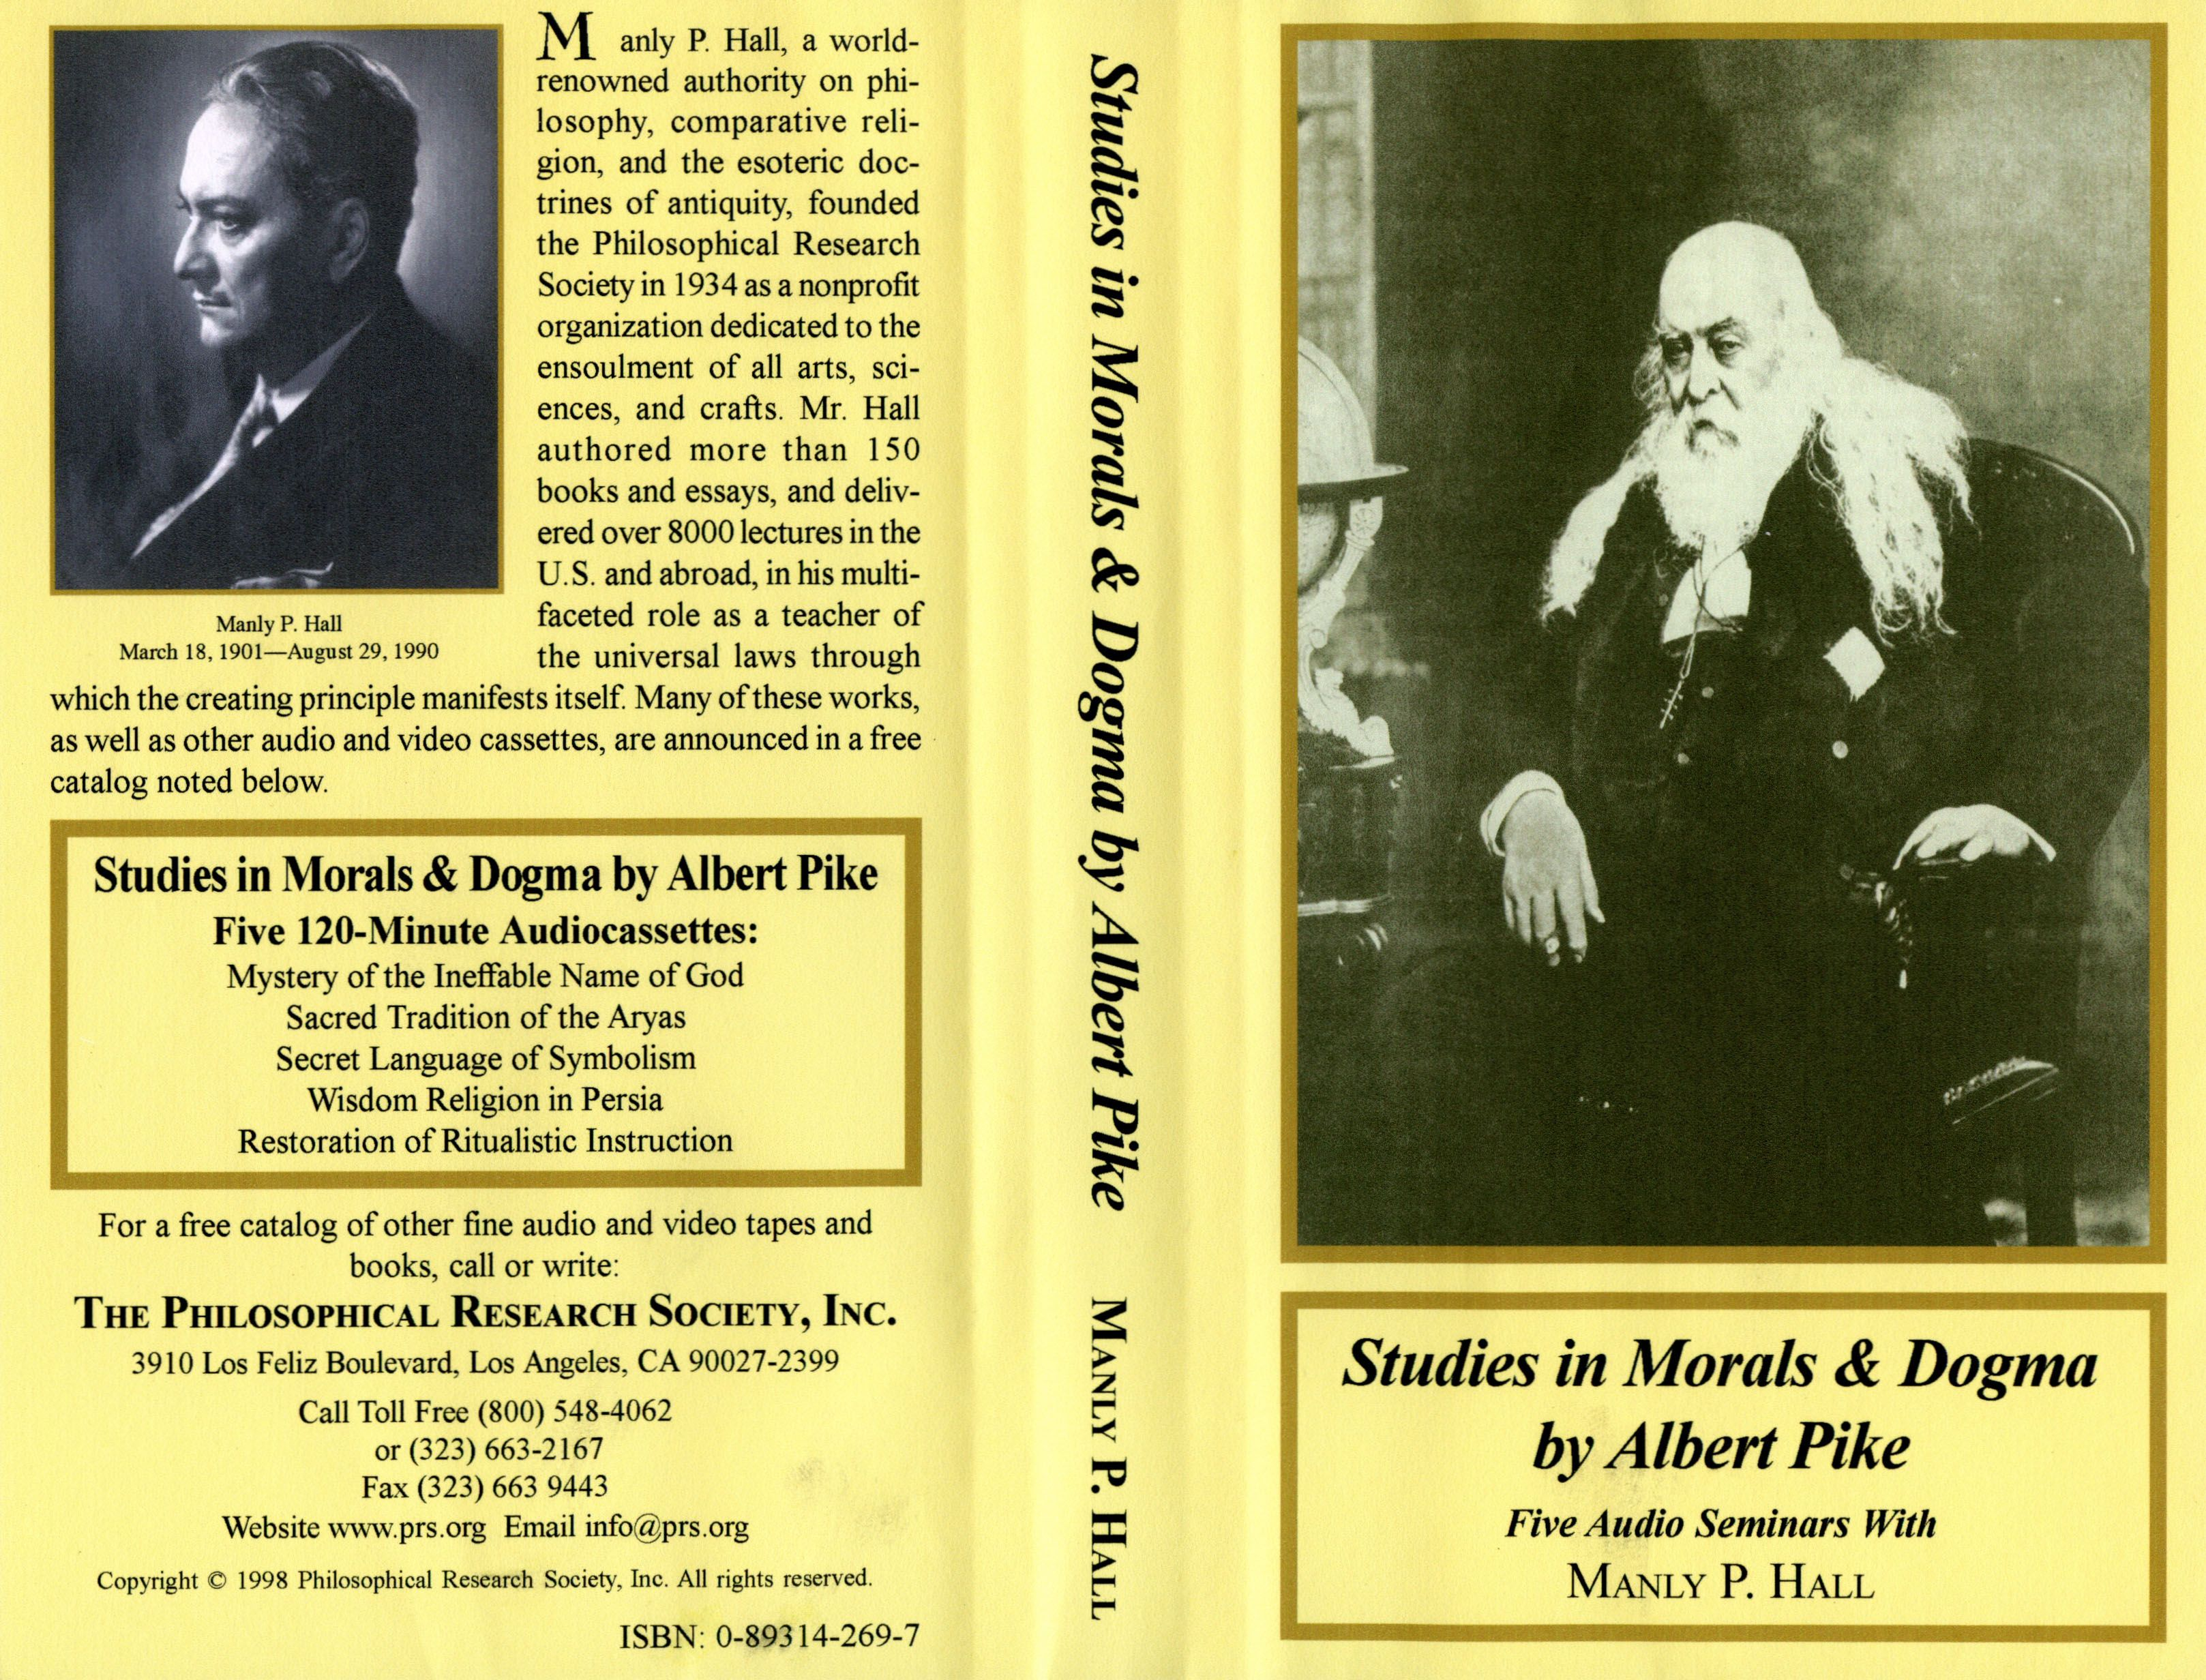 Manly P Hall Stu s in Morals & Dogma by Albert Pike